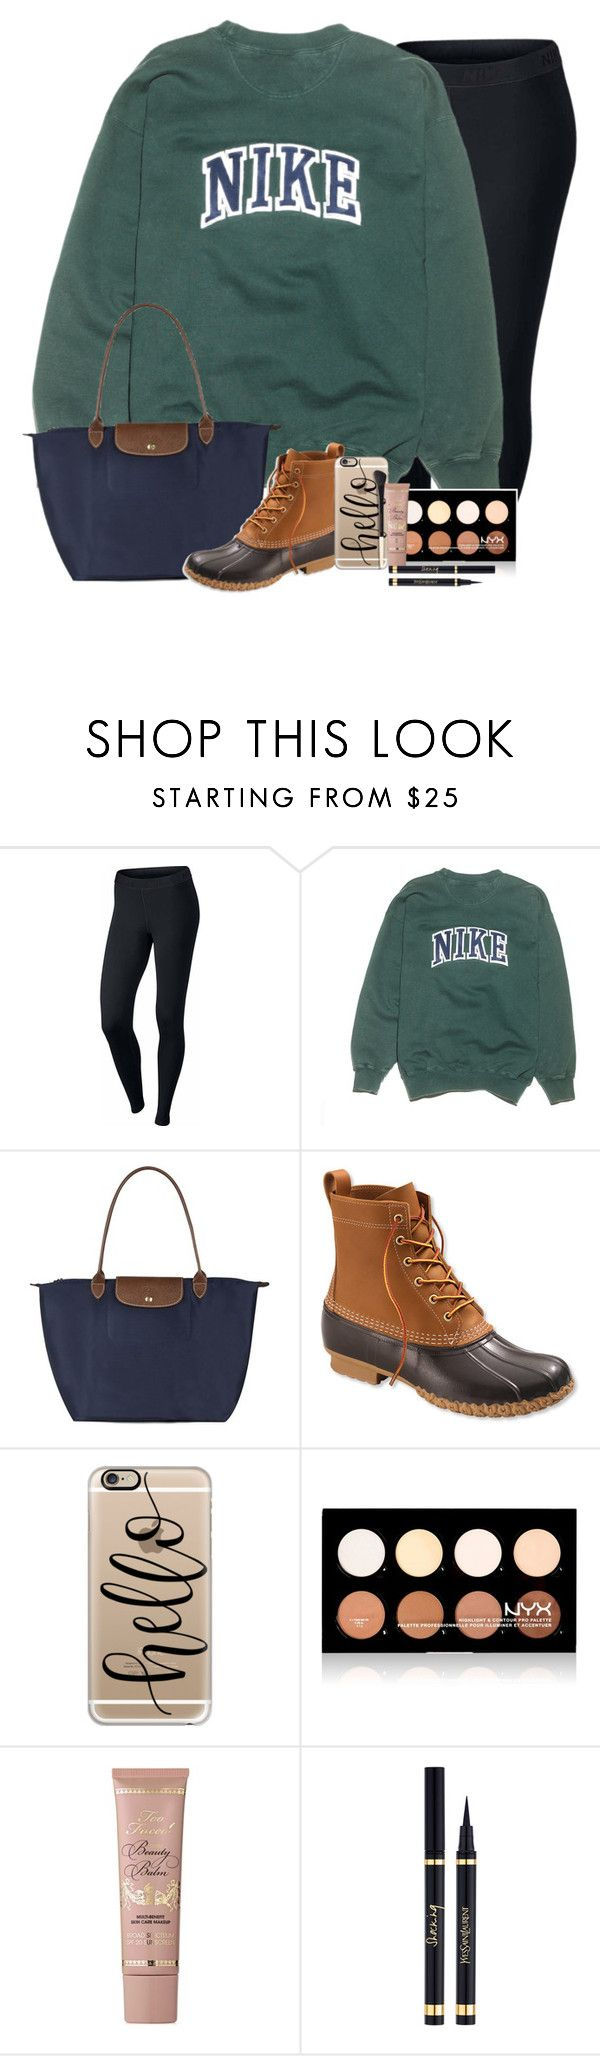 """RTD!!!!!"" by simplesouthernlife01 ❤ liked on Polyvore featuring NIKE, Longchamp, L.L.Bean, Casetify, NYX, Too Faced Cosmetics, Yves Saint Laurent and 30DaysOfChristmas2k16"